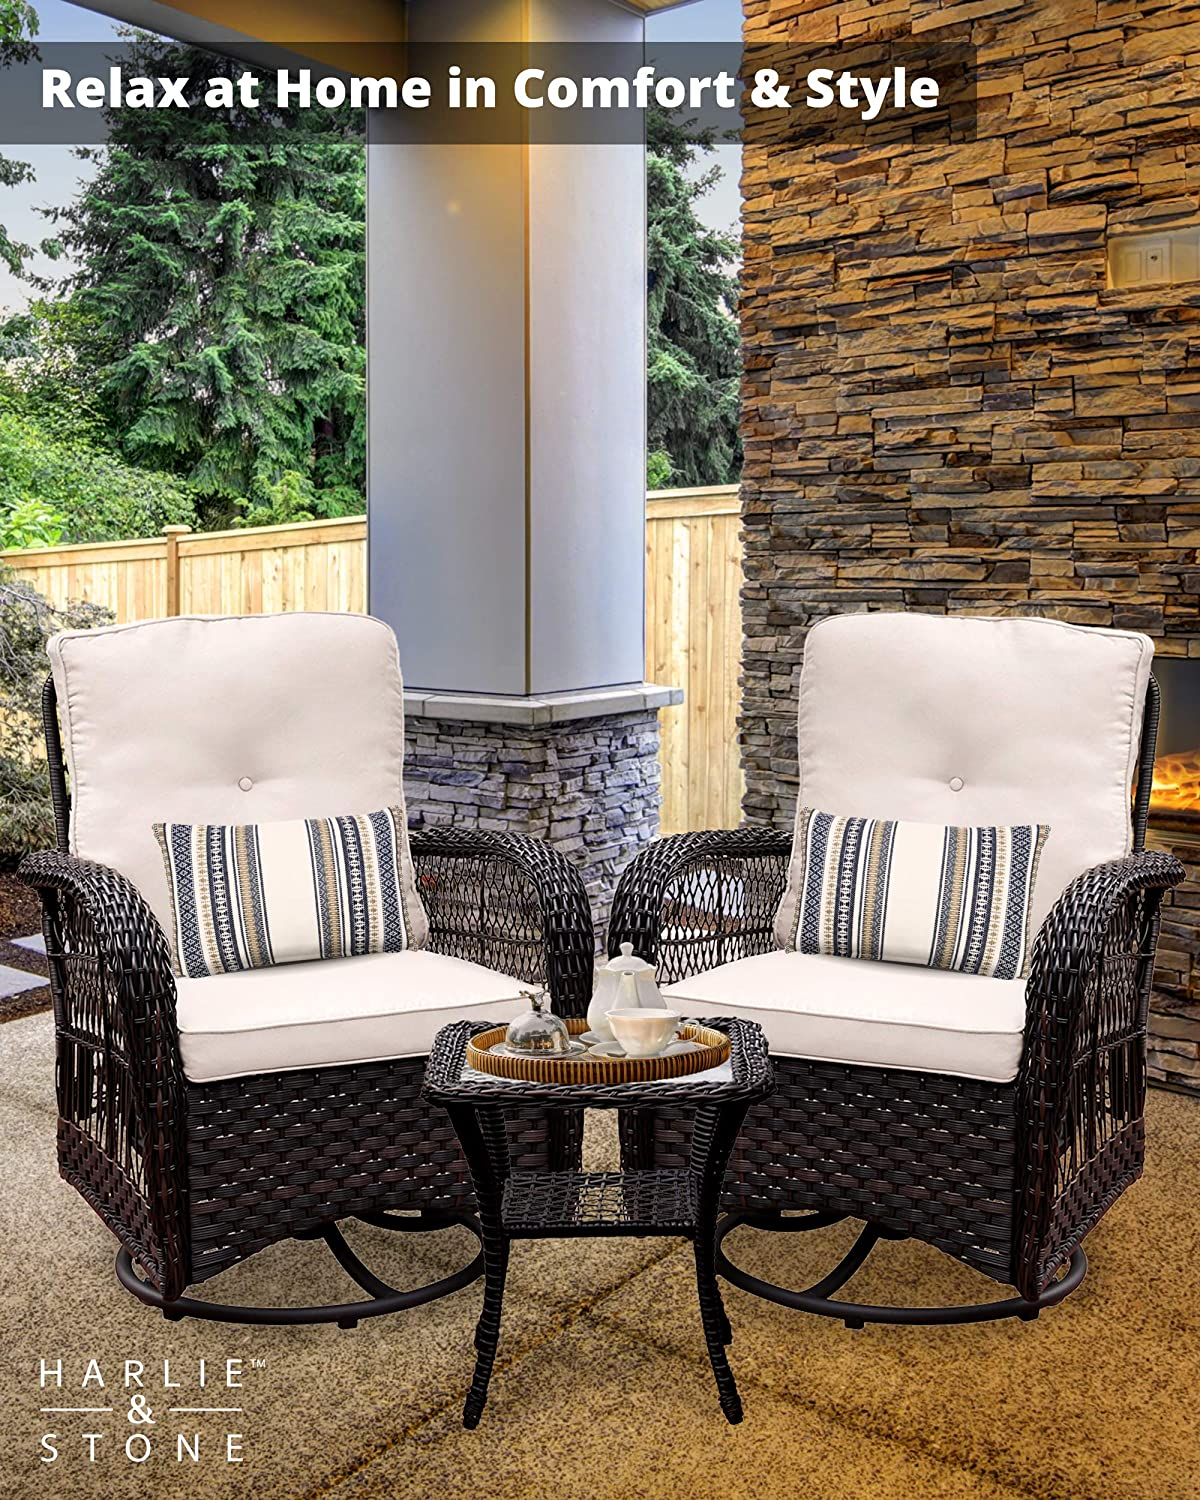 Harlie & Stone Outdoor Swivel Rocker Patio Chairs Set of 2 and Matching Side Table - 3 Piece Wicker Patio Bistro Set with Premium Fabric Cushions: Kitchen & Dining